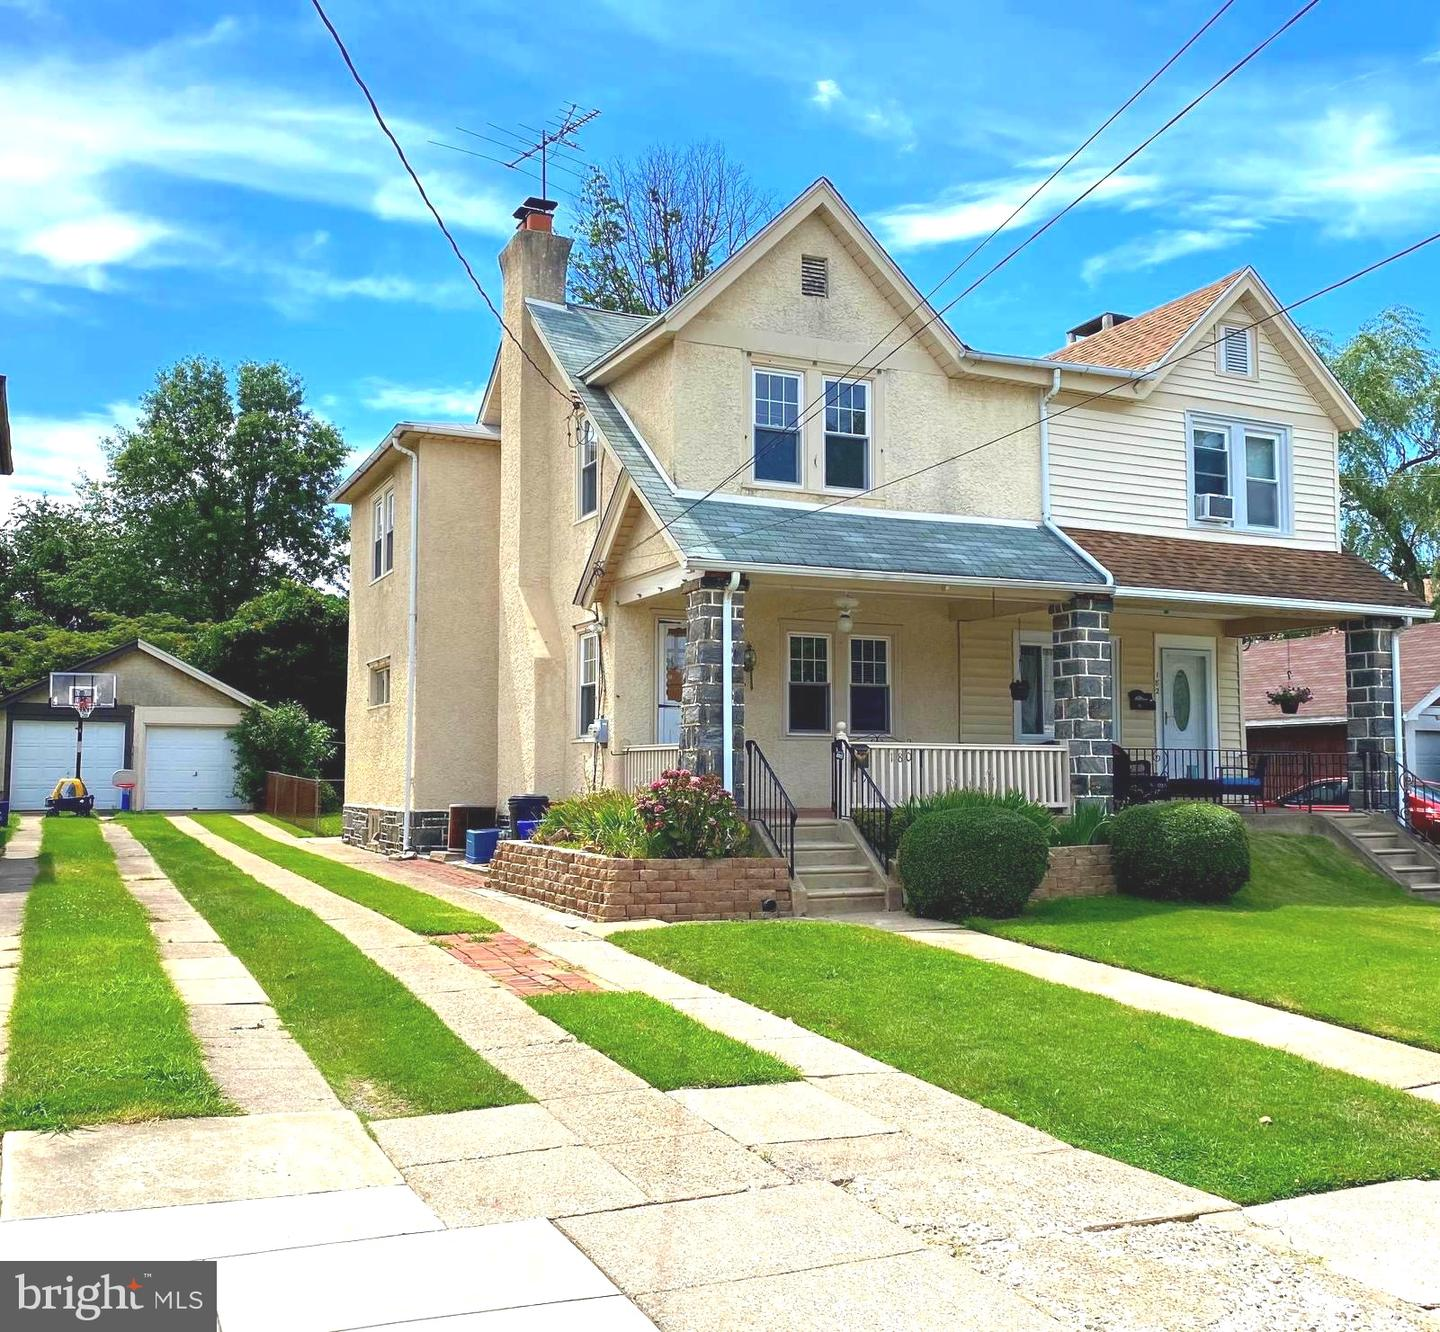 180 Shelbourne Road Havertown, PA 19083